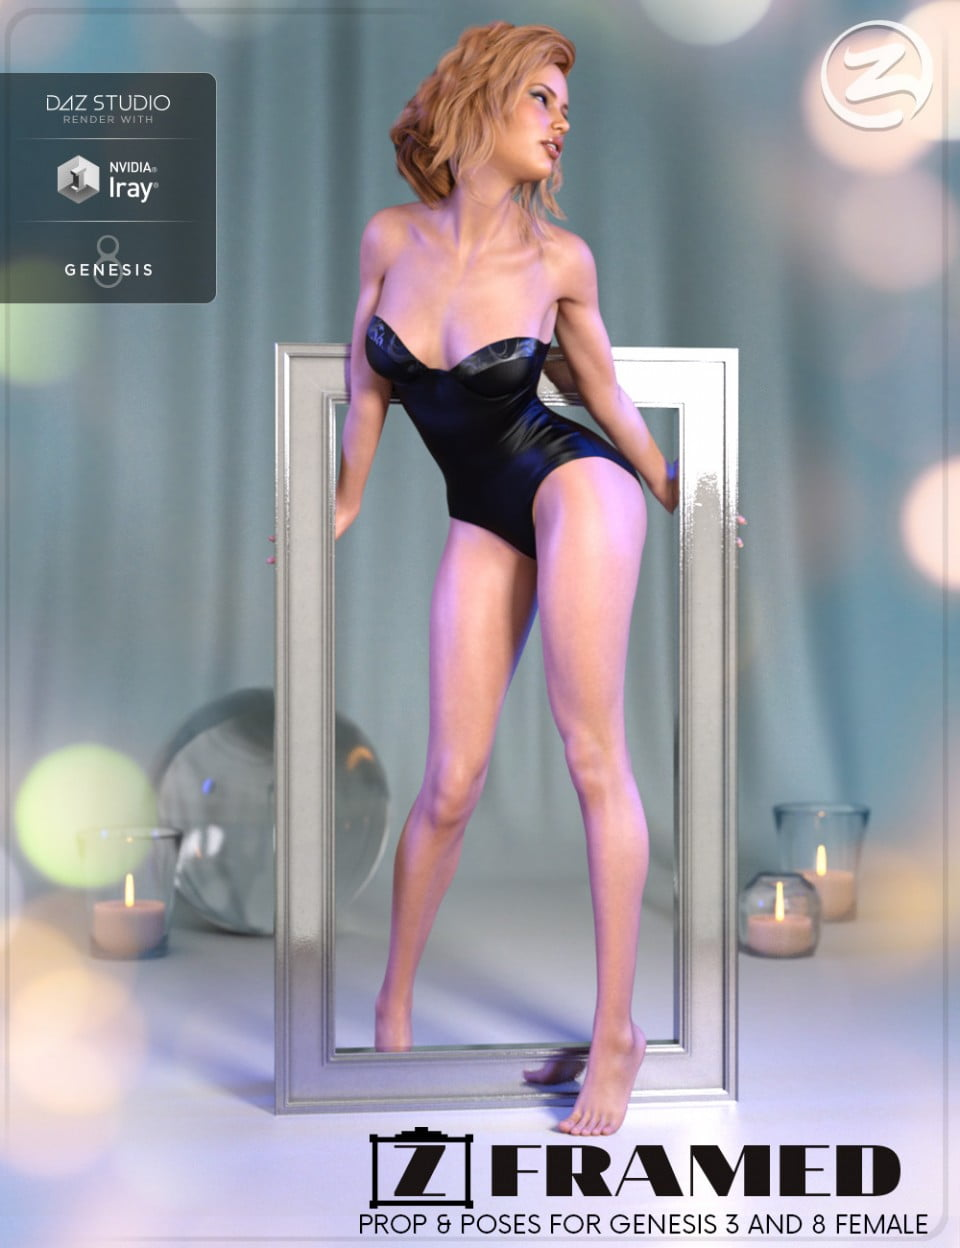 Z Framed – Prop and Poses for Genesis 3 and 8 Female